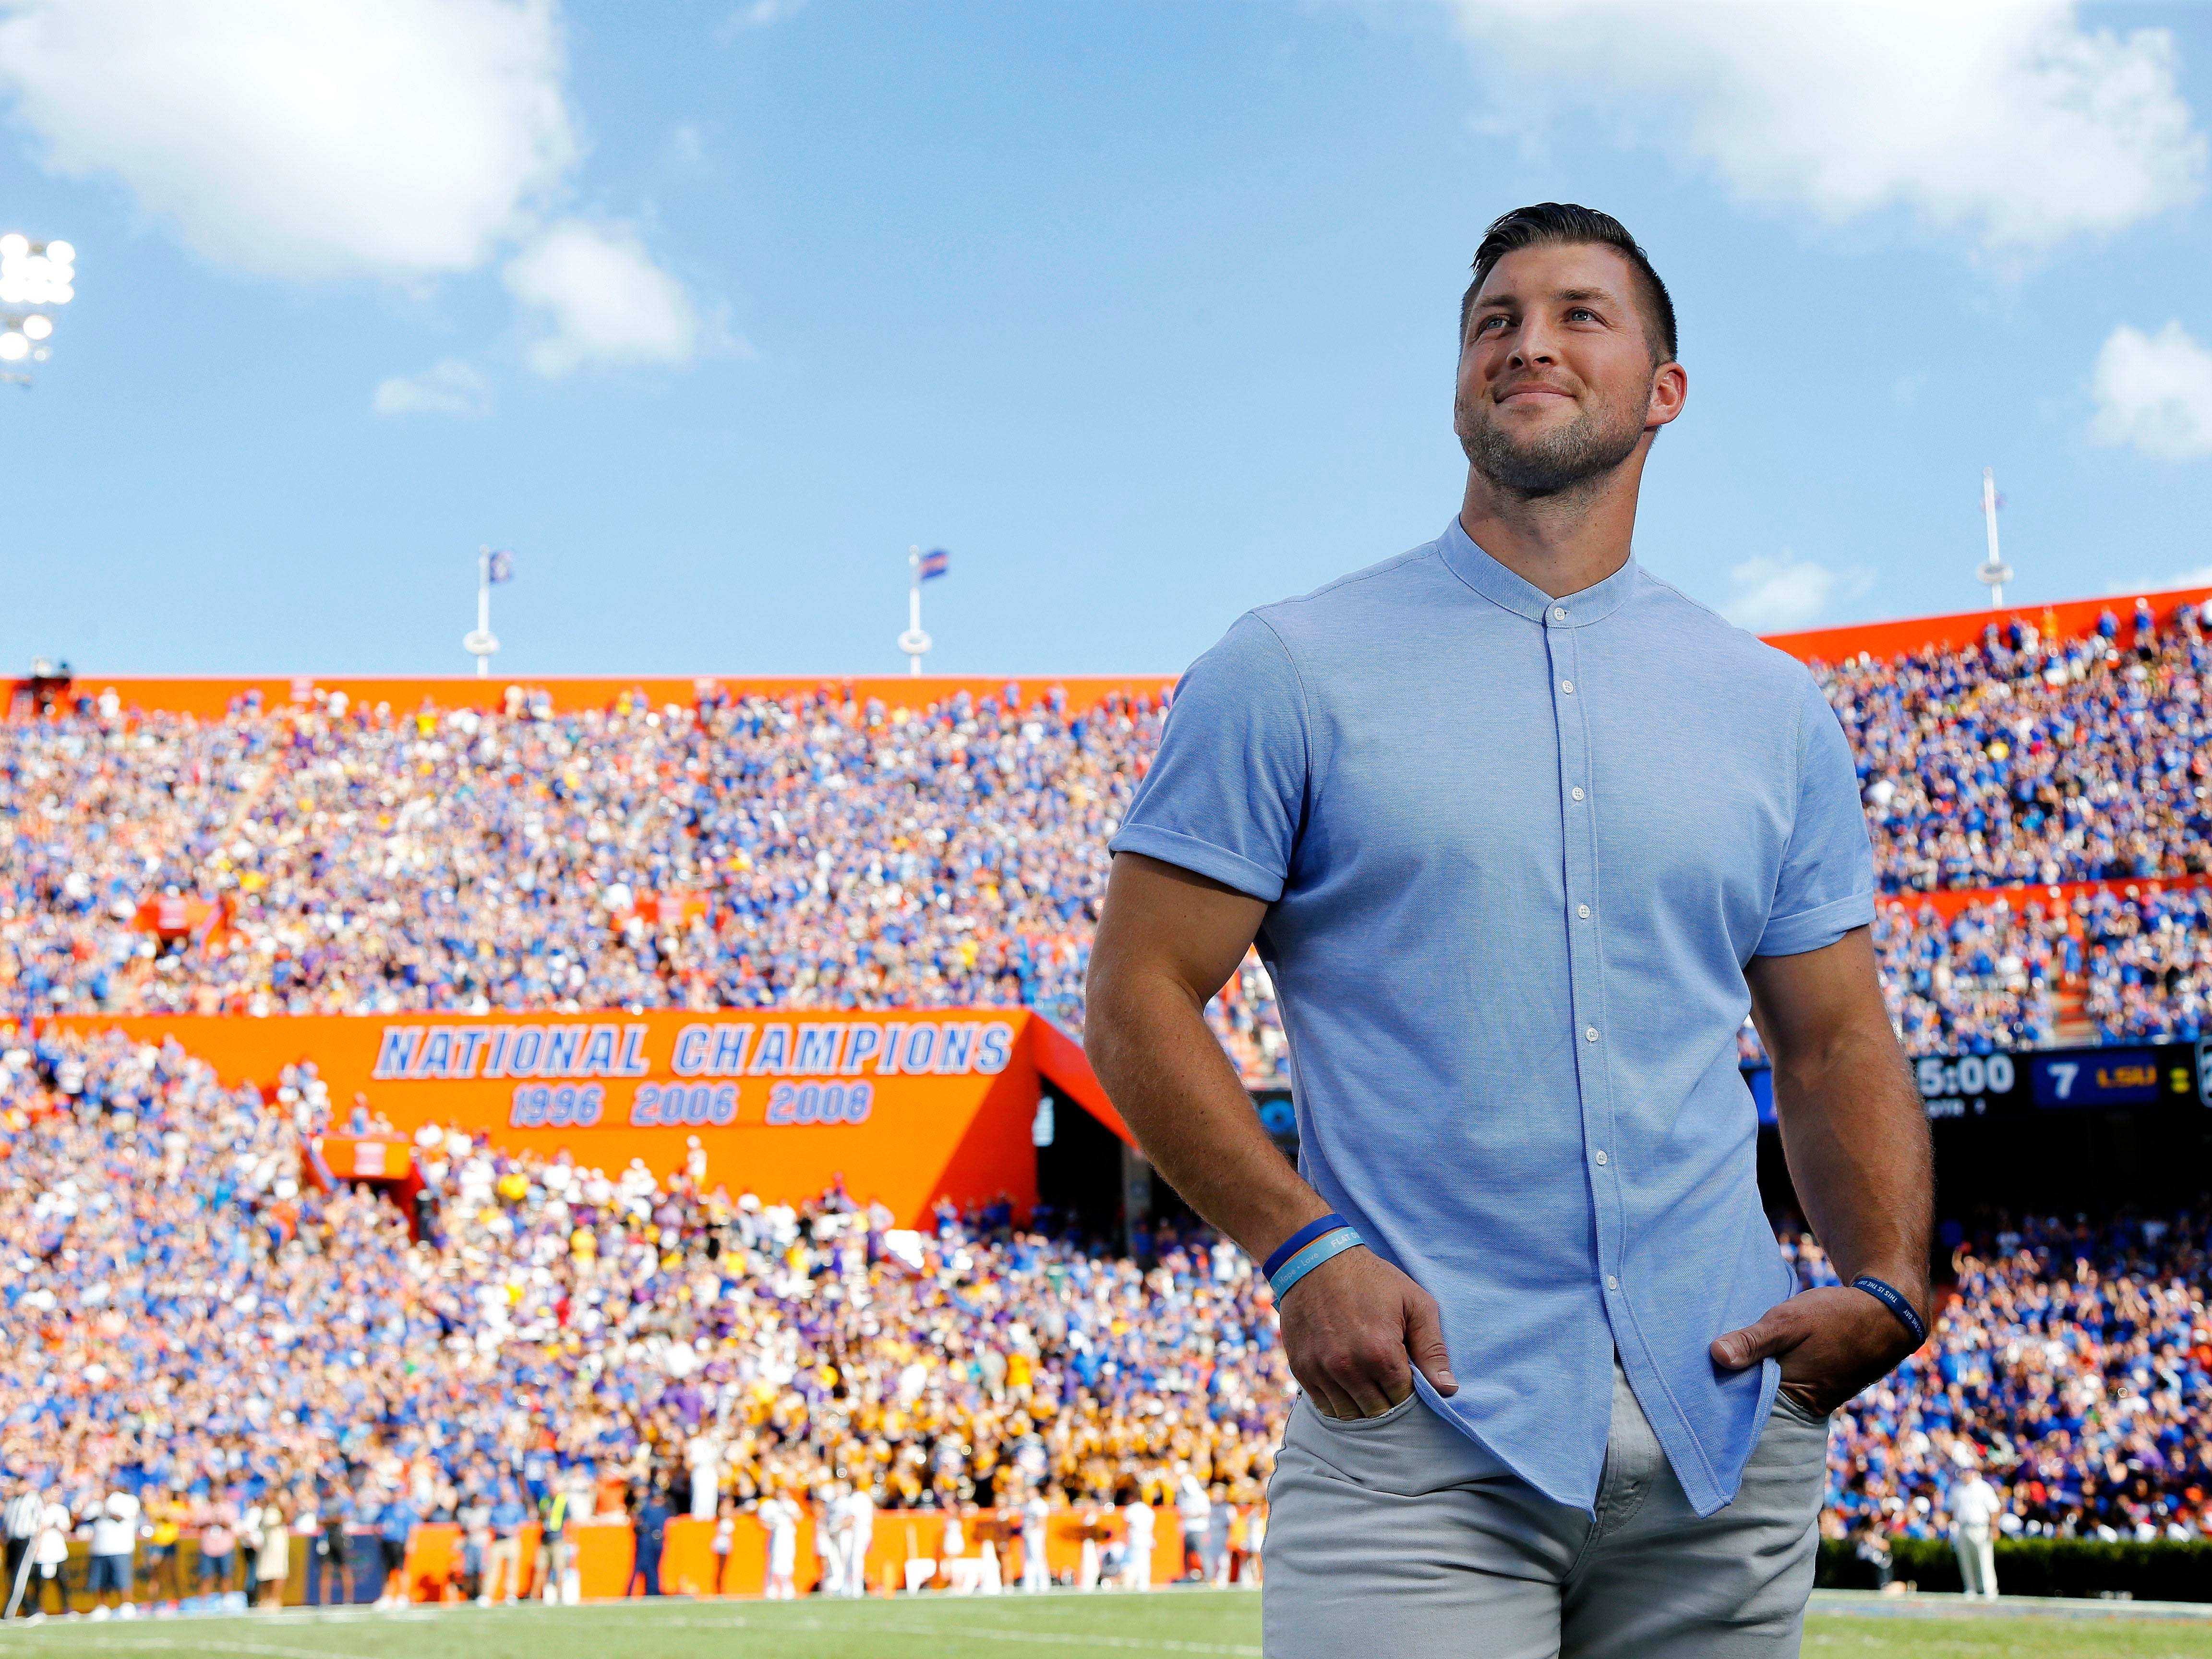 Florida Gators former quarterback Tim Tebow is inducted into the Ring of Honor at the end of the first quarter against the LSU Tigers at Ben Hill Griffin Stadium.